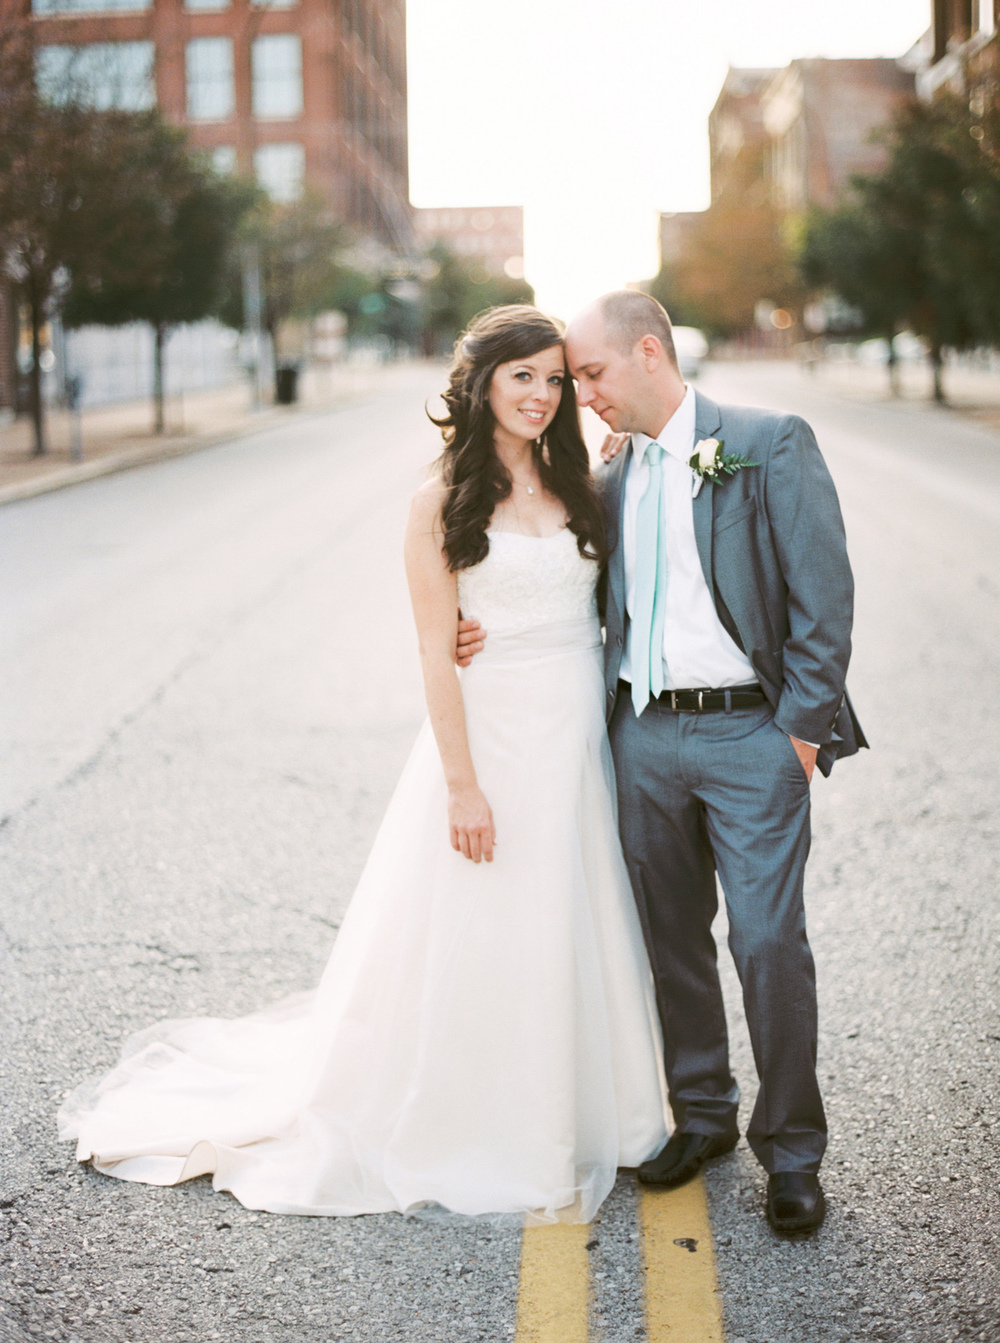 Oldani-Photography-St-Louis-Film-Photographer-Schlafly-Tap-Room-Wedding-Reception8603_13.jpg